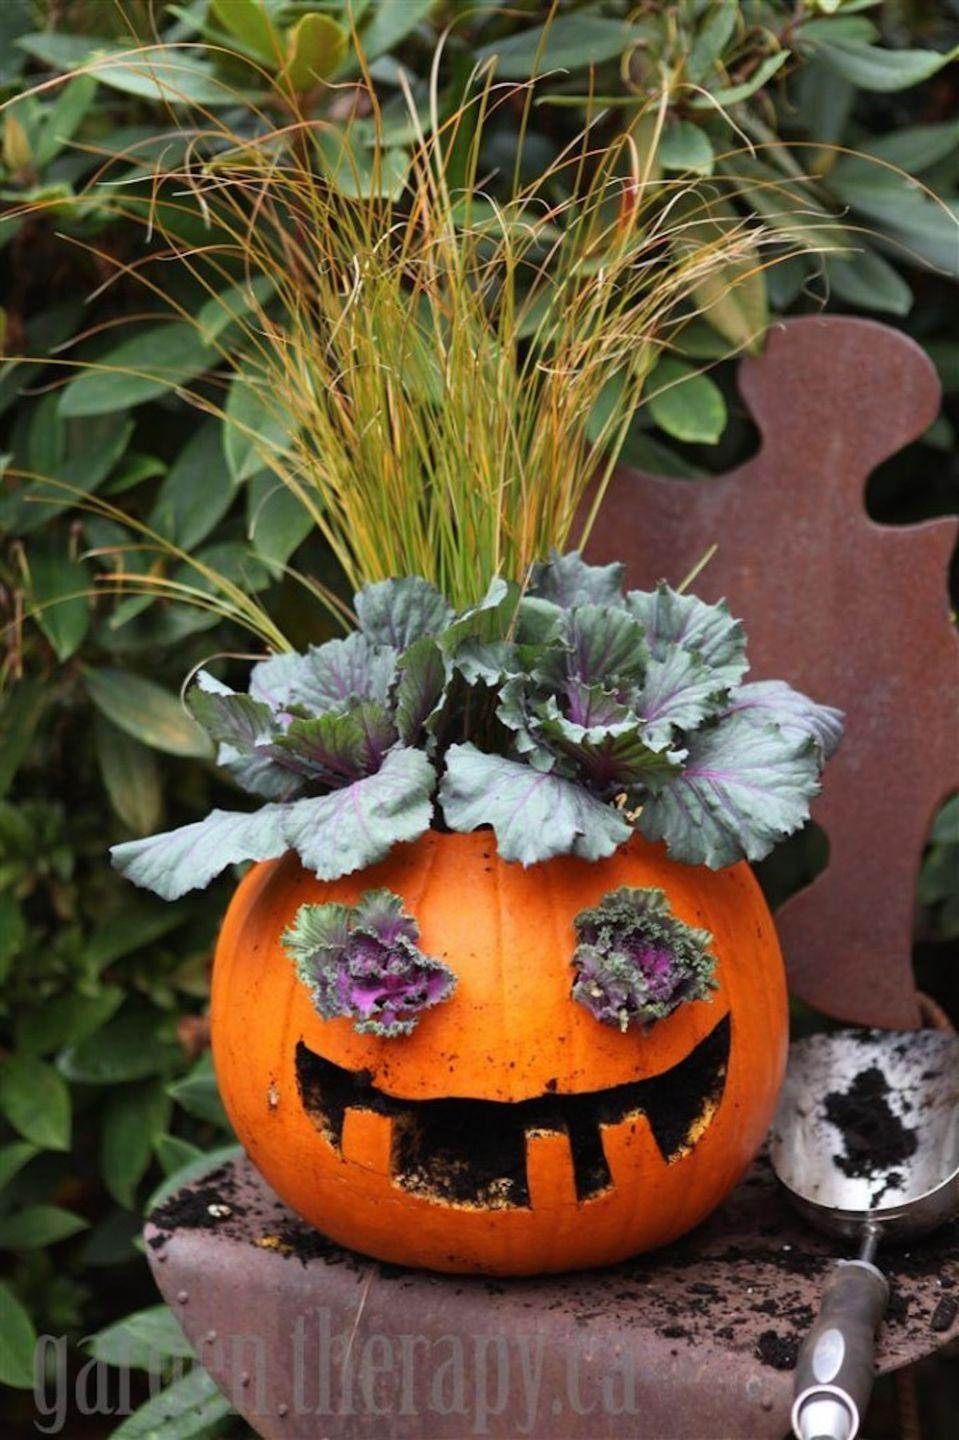 "<p>Put a smile on everyone's face with this adorably festive mini-garden! </p><p><strong>Get the tutorial at <a href=""https://gardentherapy.ca/jack-o-planterns/"" rel=""nofollow noopener"" target=""_blank"" data-ylk=""slk:Garden Therapy"" class=""link rapid-noclick-resp"">Garden Therapy</a>. </strong></p>"